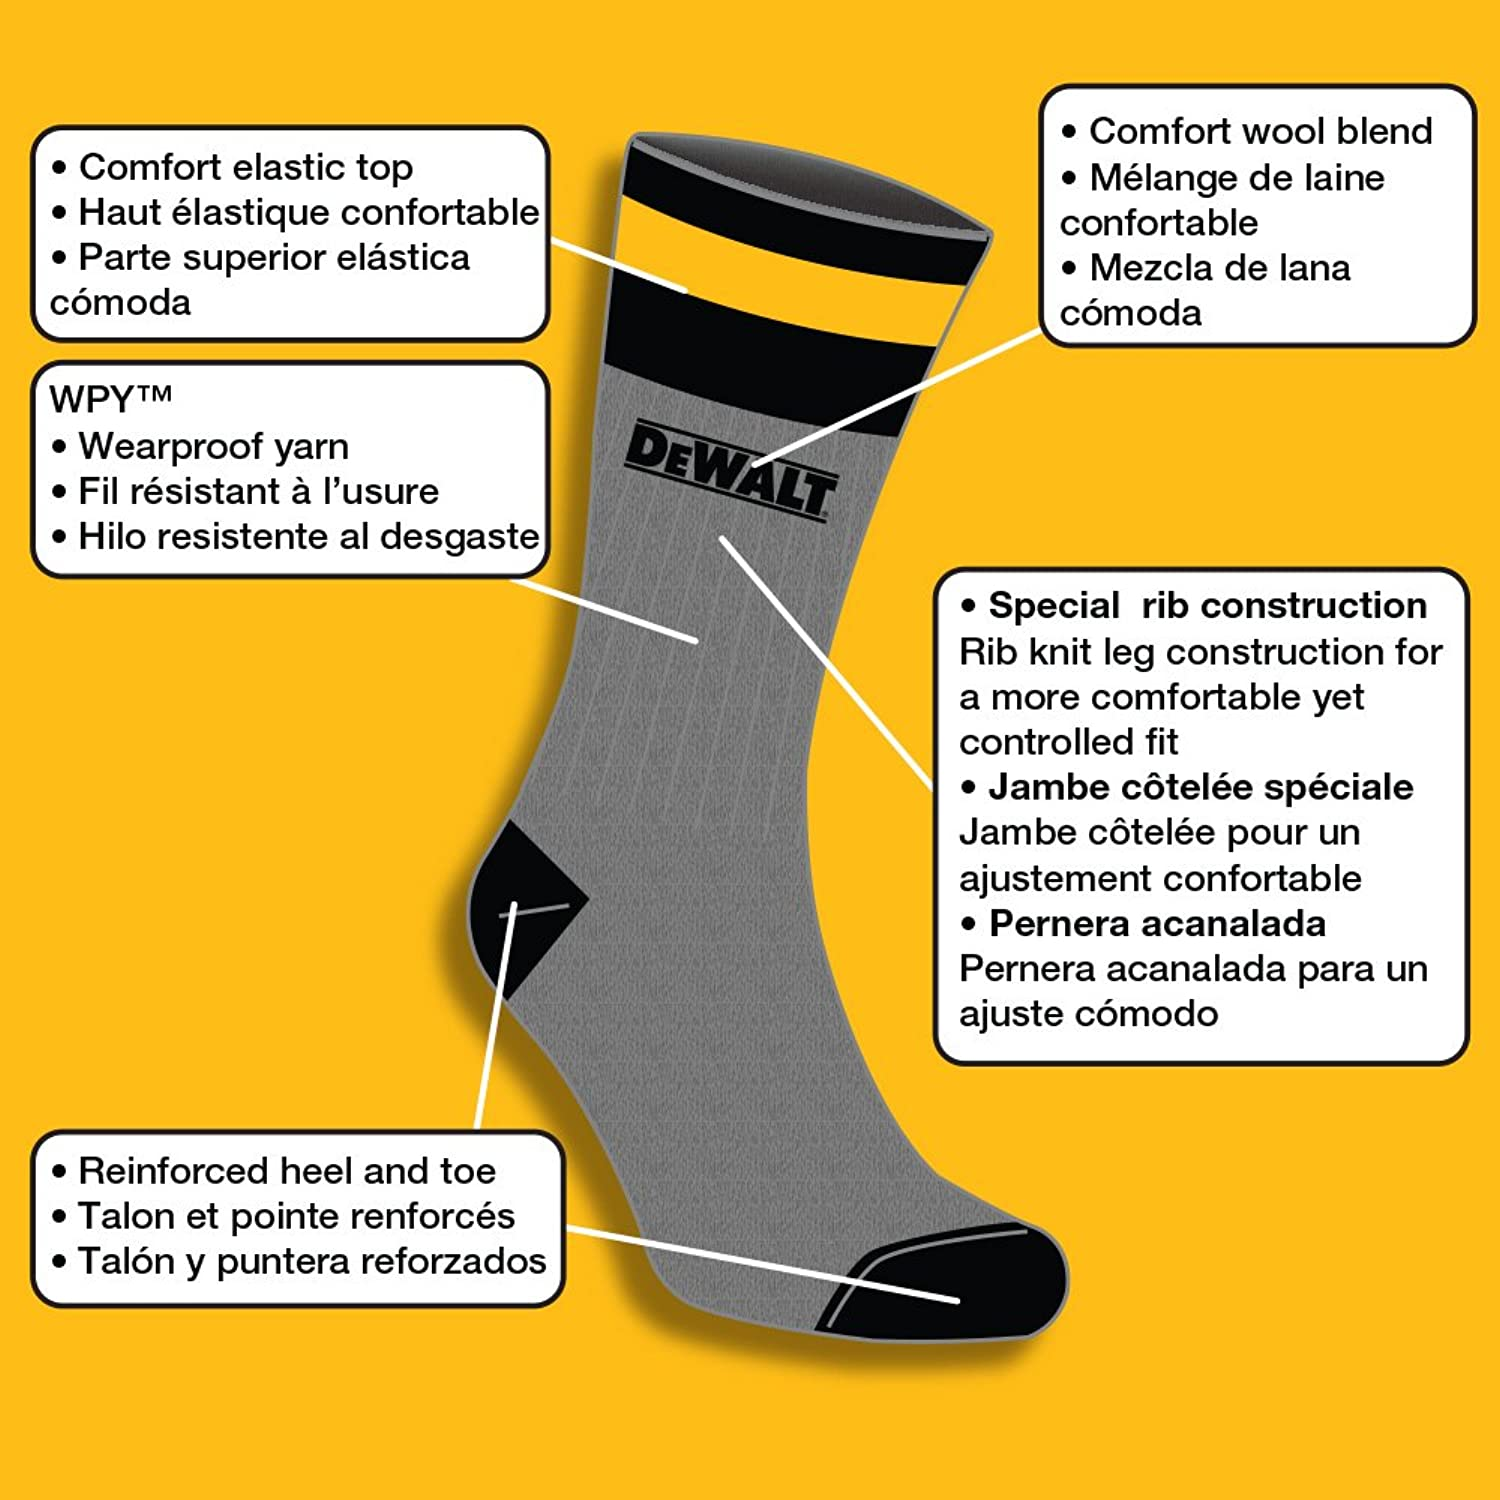 DeWALT Mens 2 Pack Wool Blend Boot Crew Socks (Black & Yellow), 10-13 Sock/6-12 Shoe at Amazon Mens Clothing store: